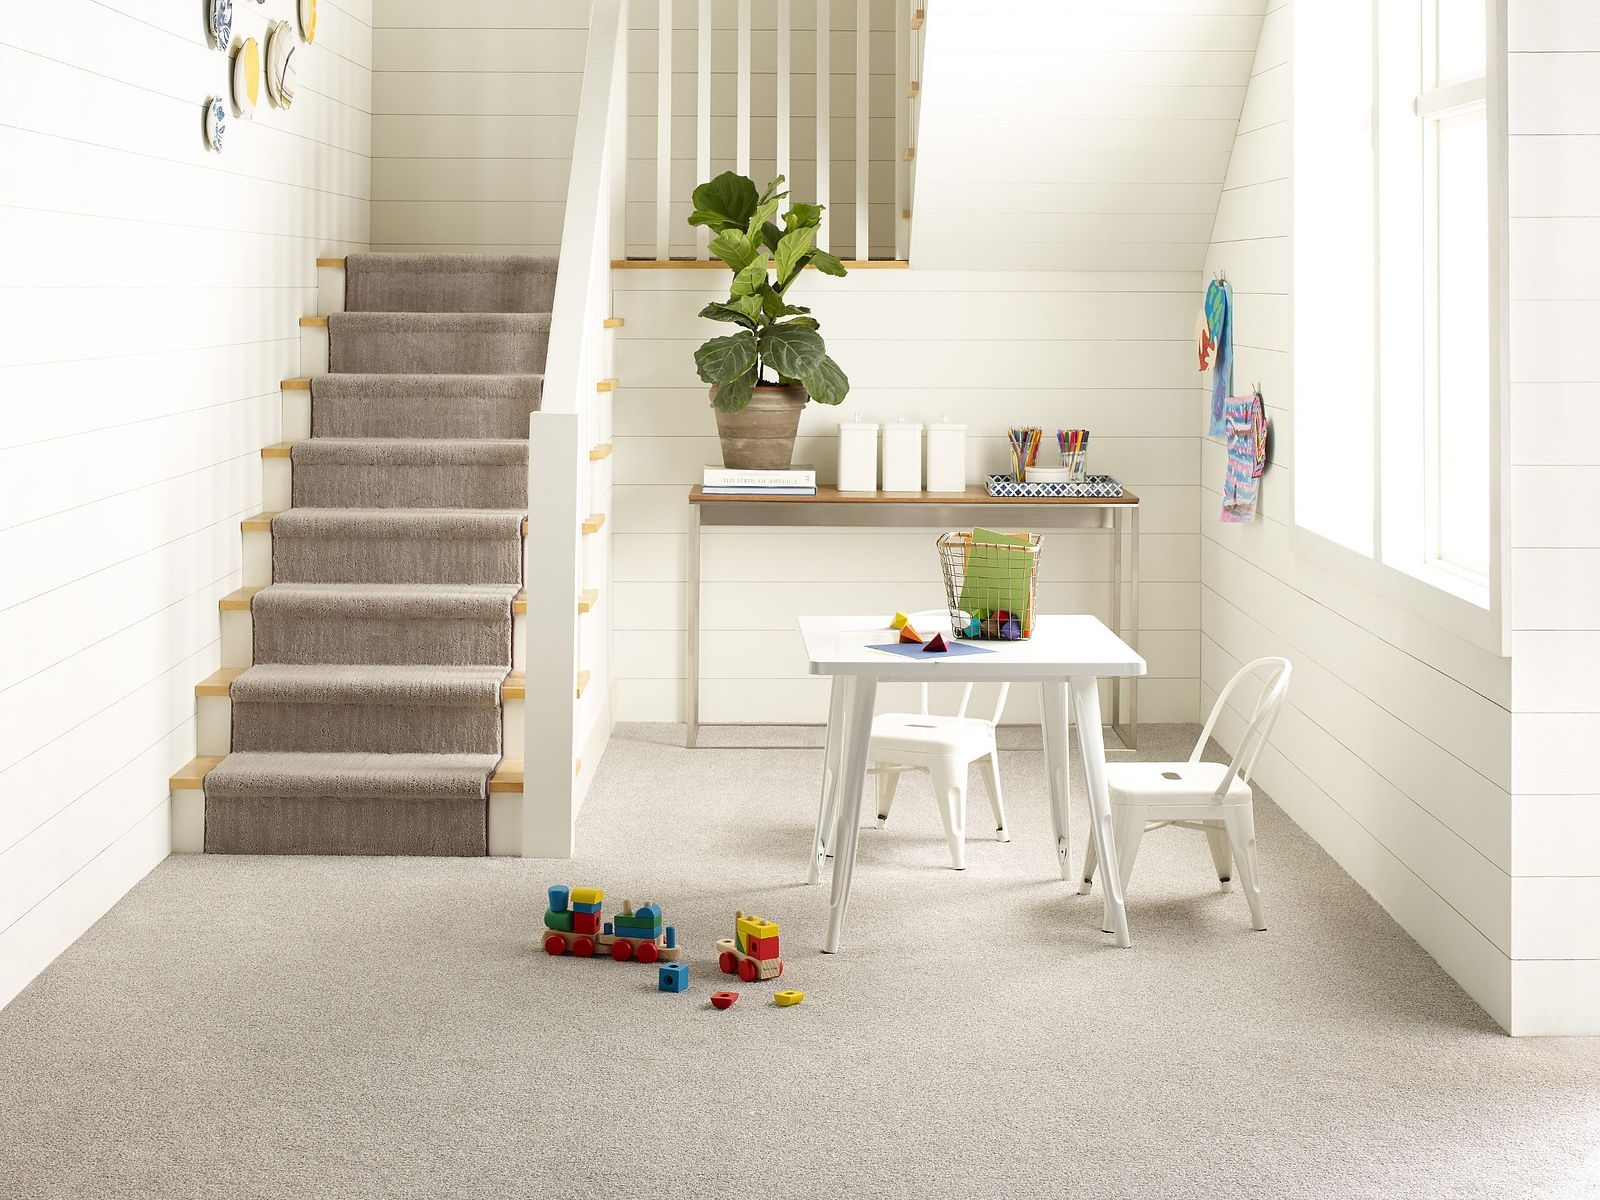 Carpet Carpeting Berber Texture More Shaw Floors | Stairs With Carpet In The Middle | Runner Corner | Laminate | Contemporary | Run On Stair | Marble